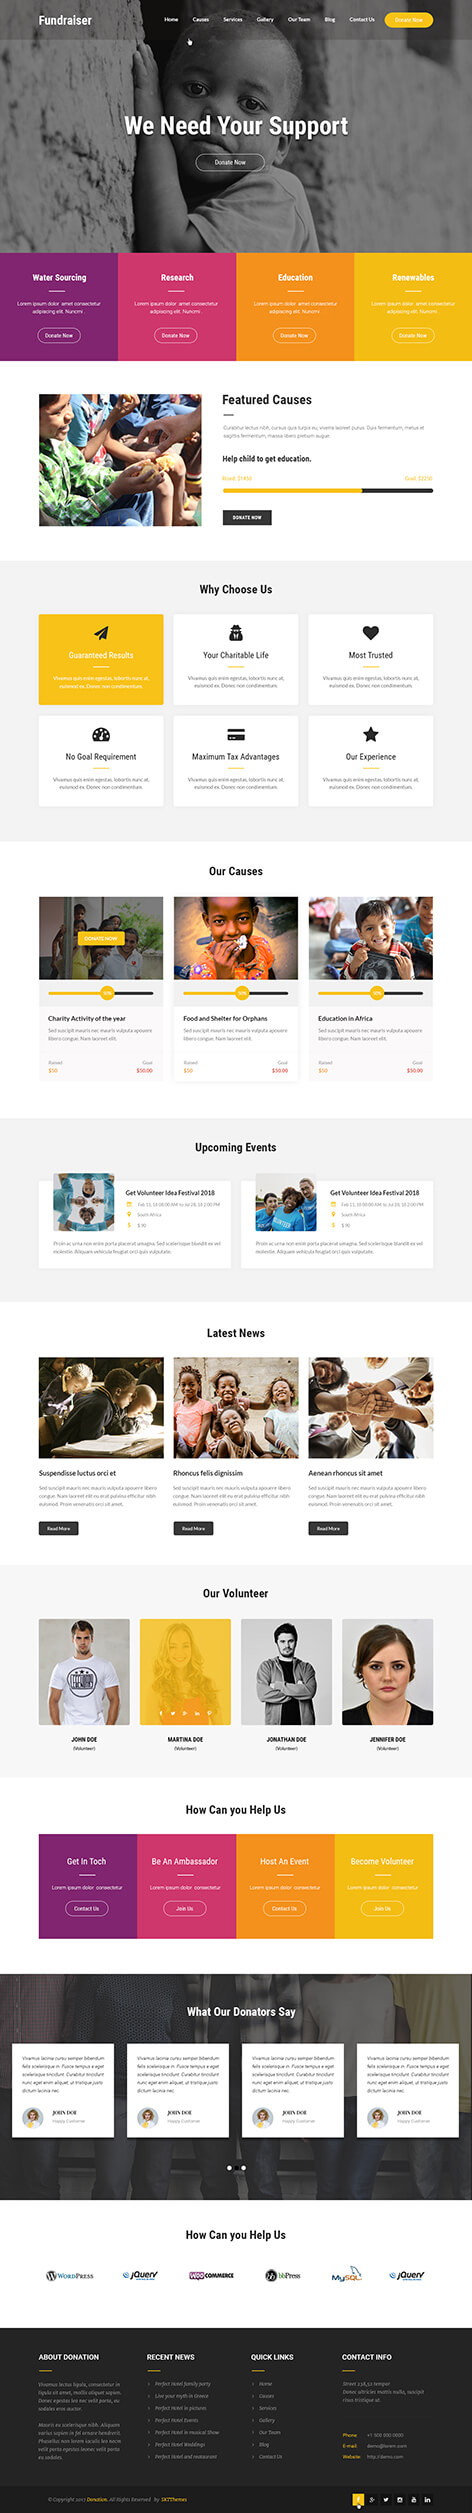 fundraising WordPress theme